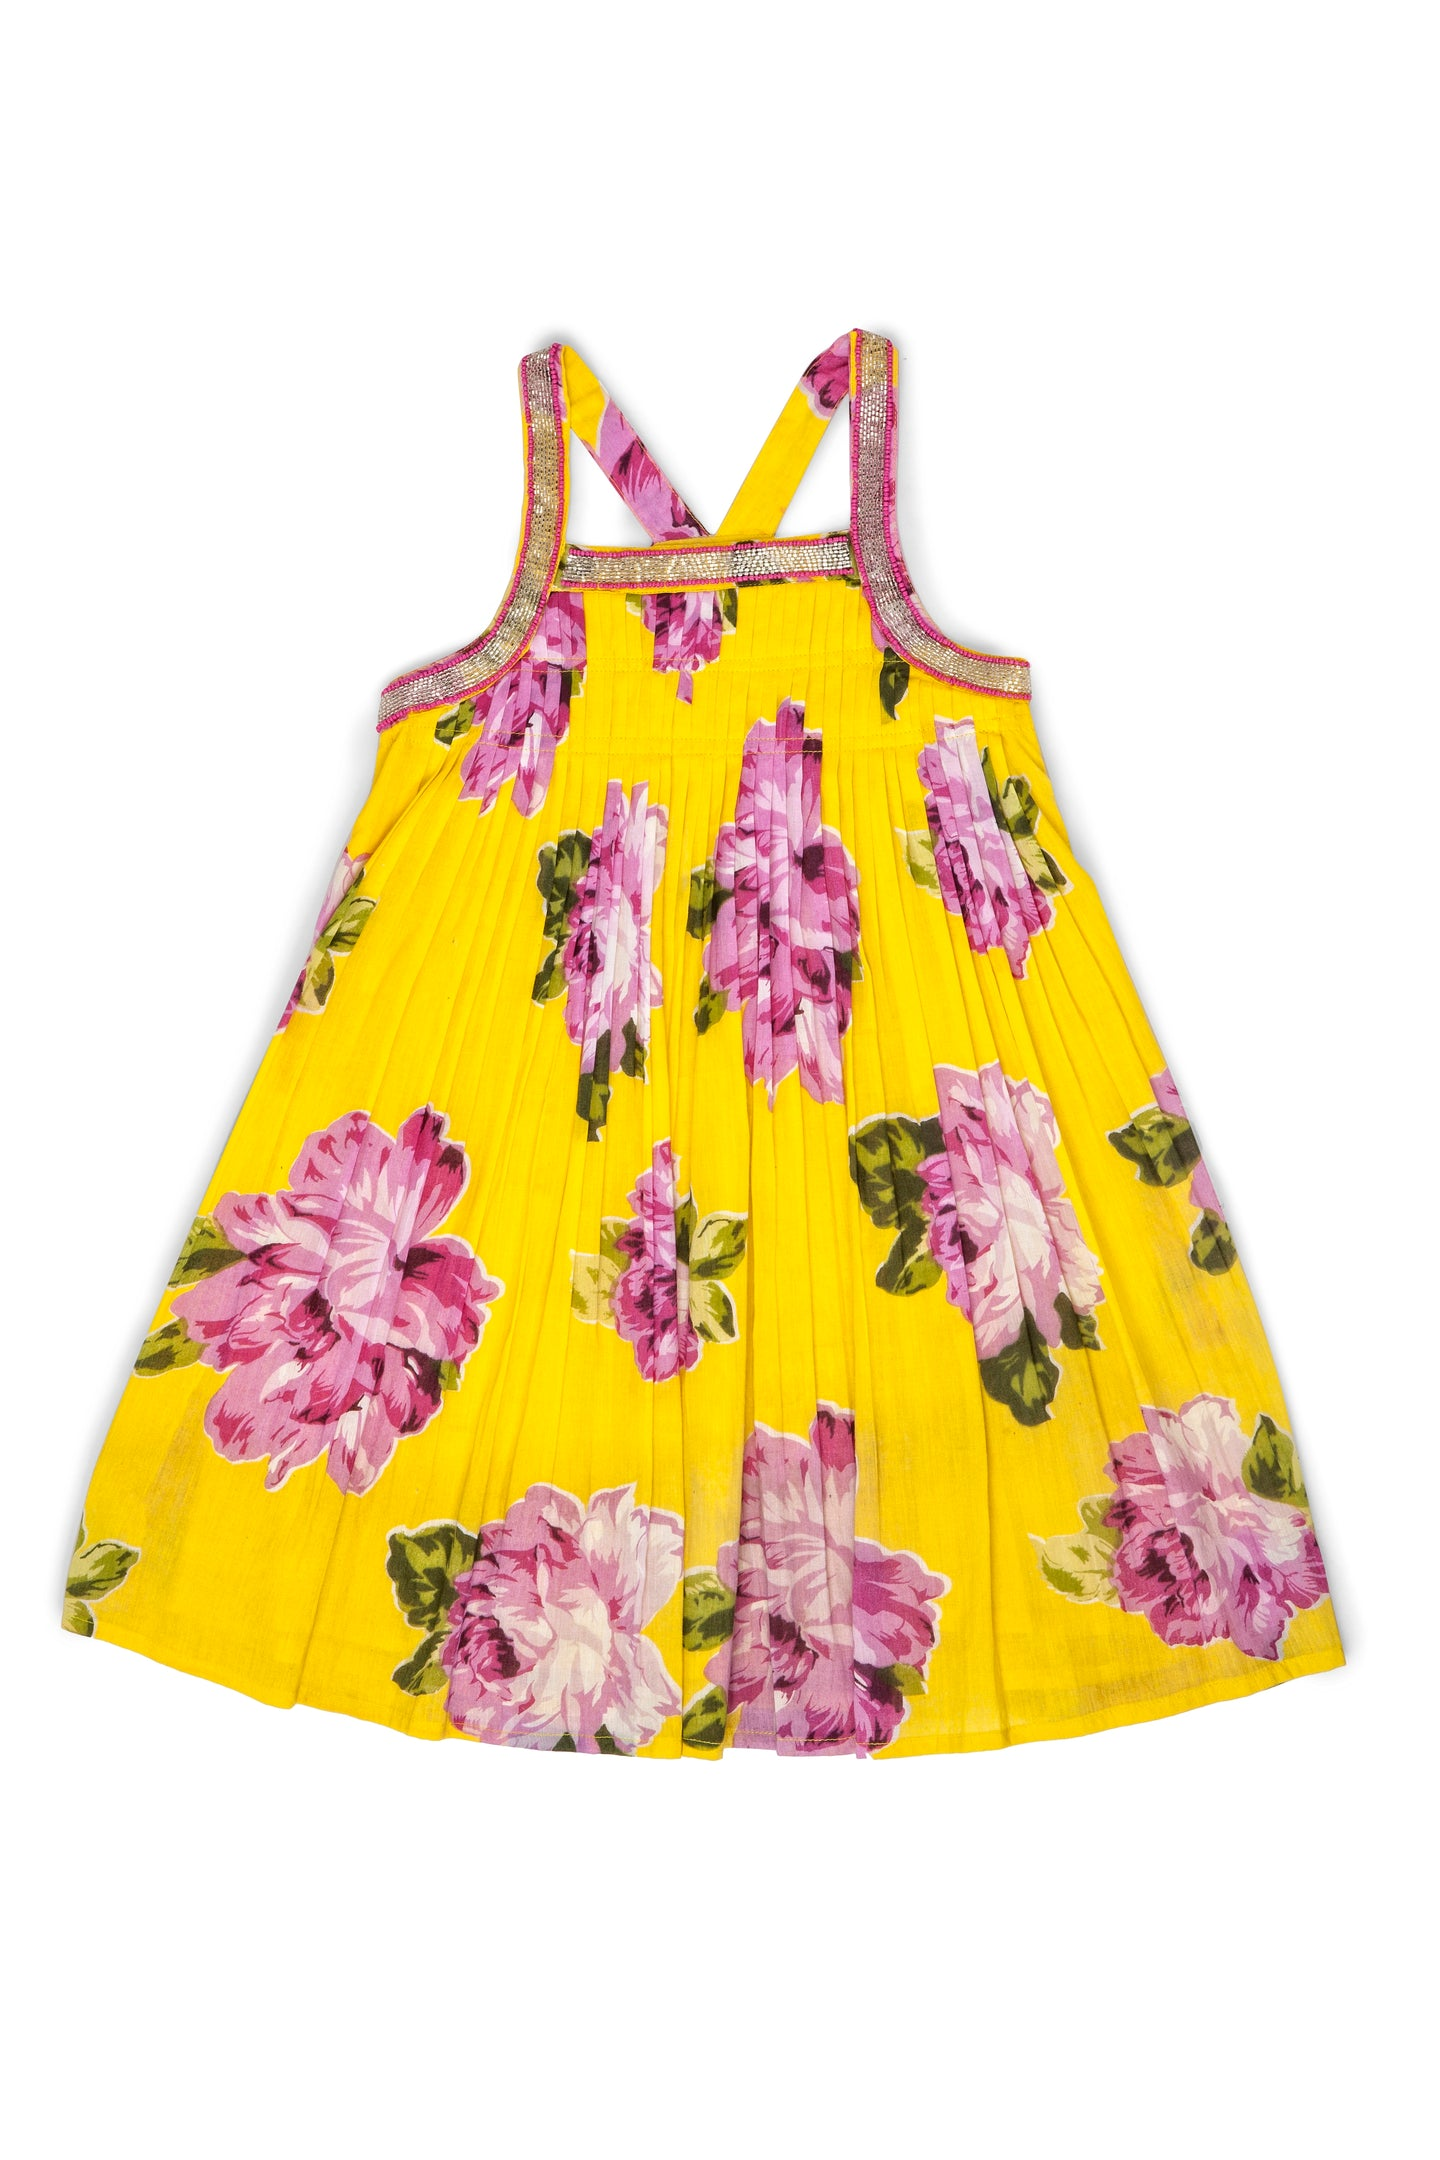 MILA DRESS - YELLOW FLORAL